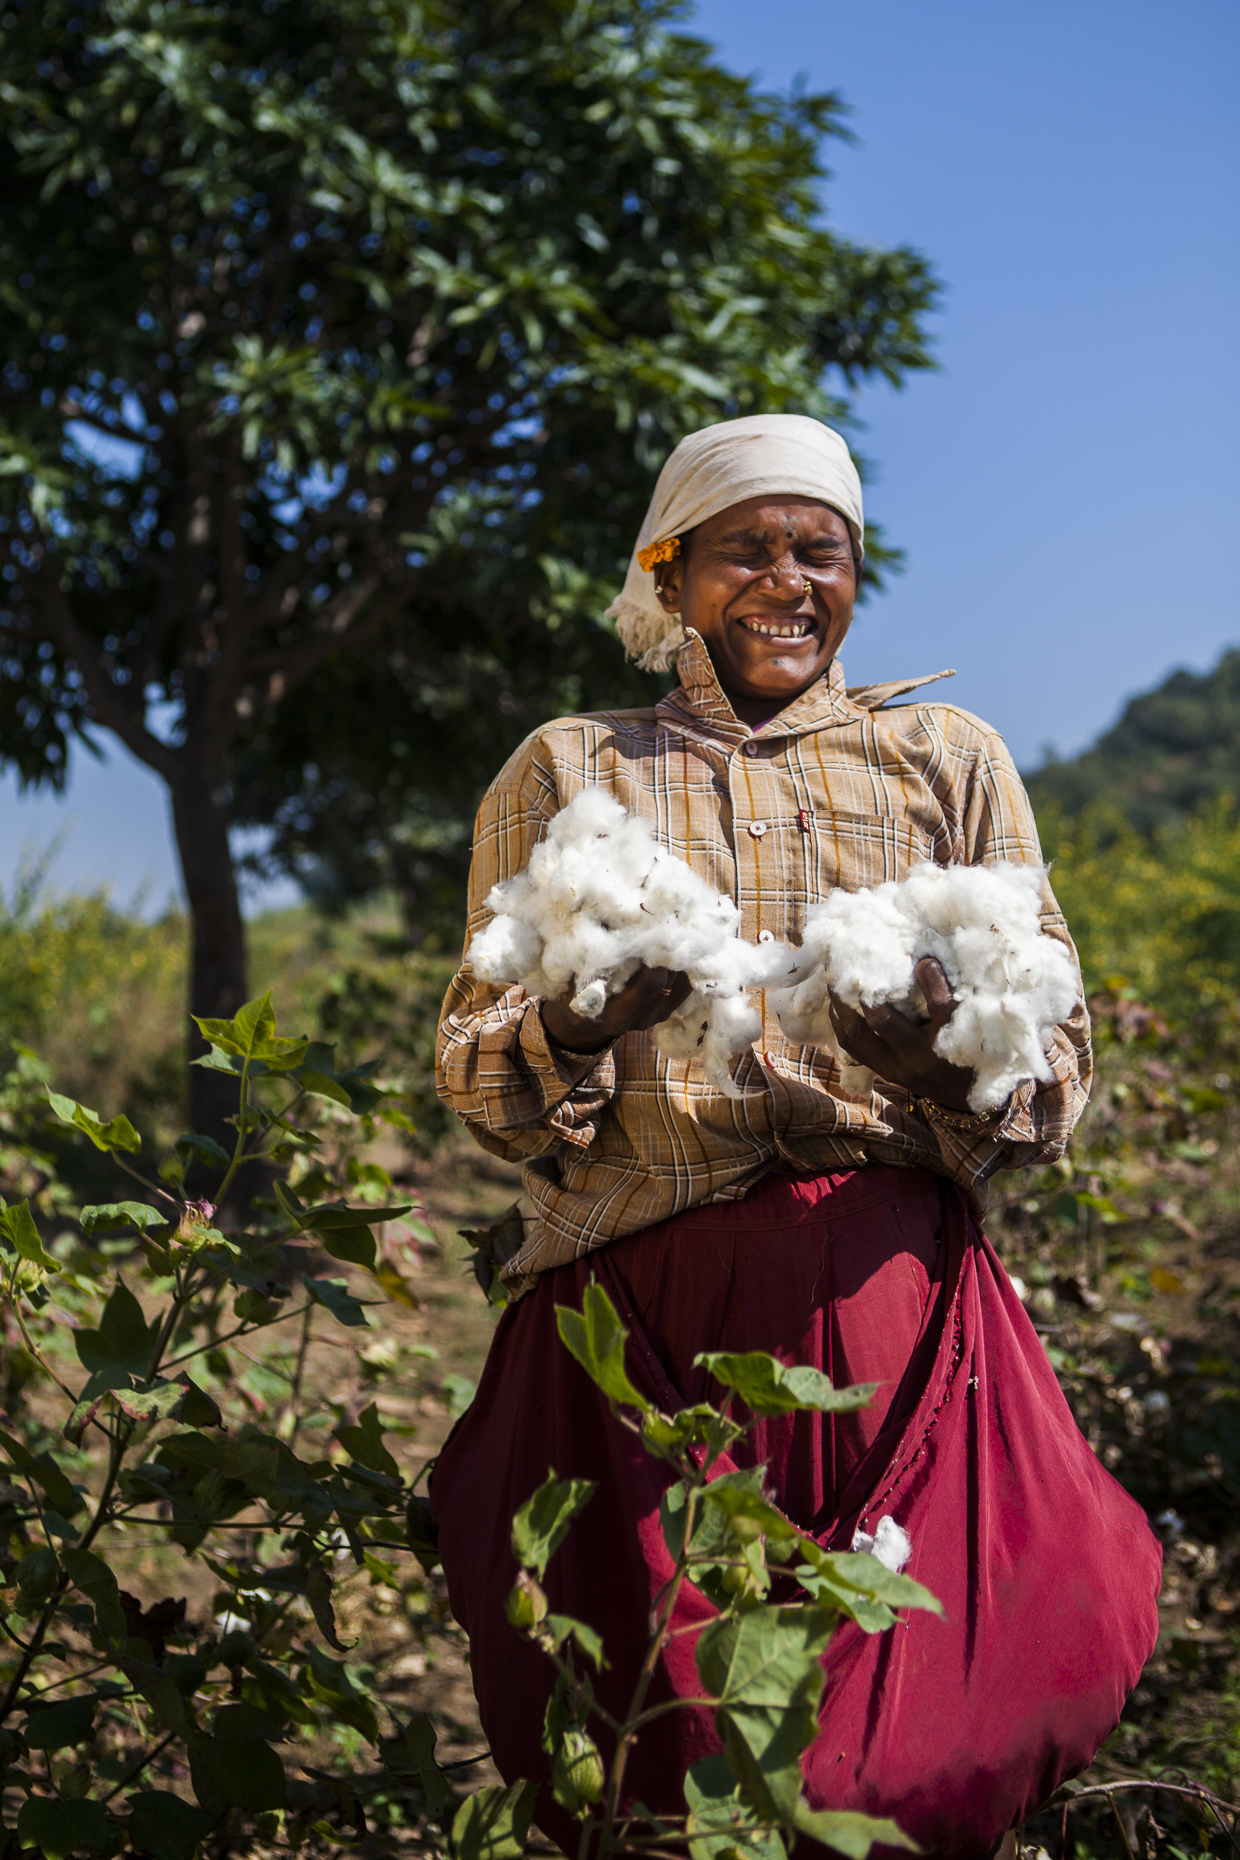 Fair trade cotton farmer, India